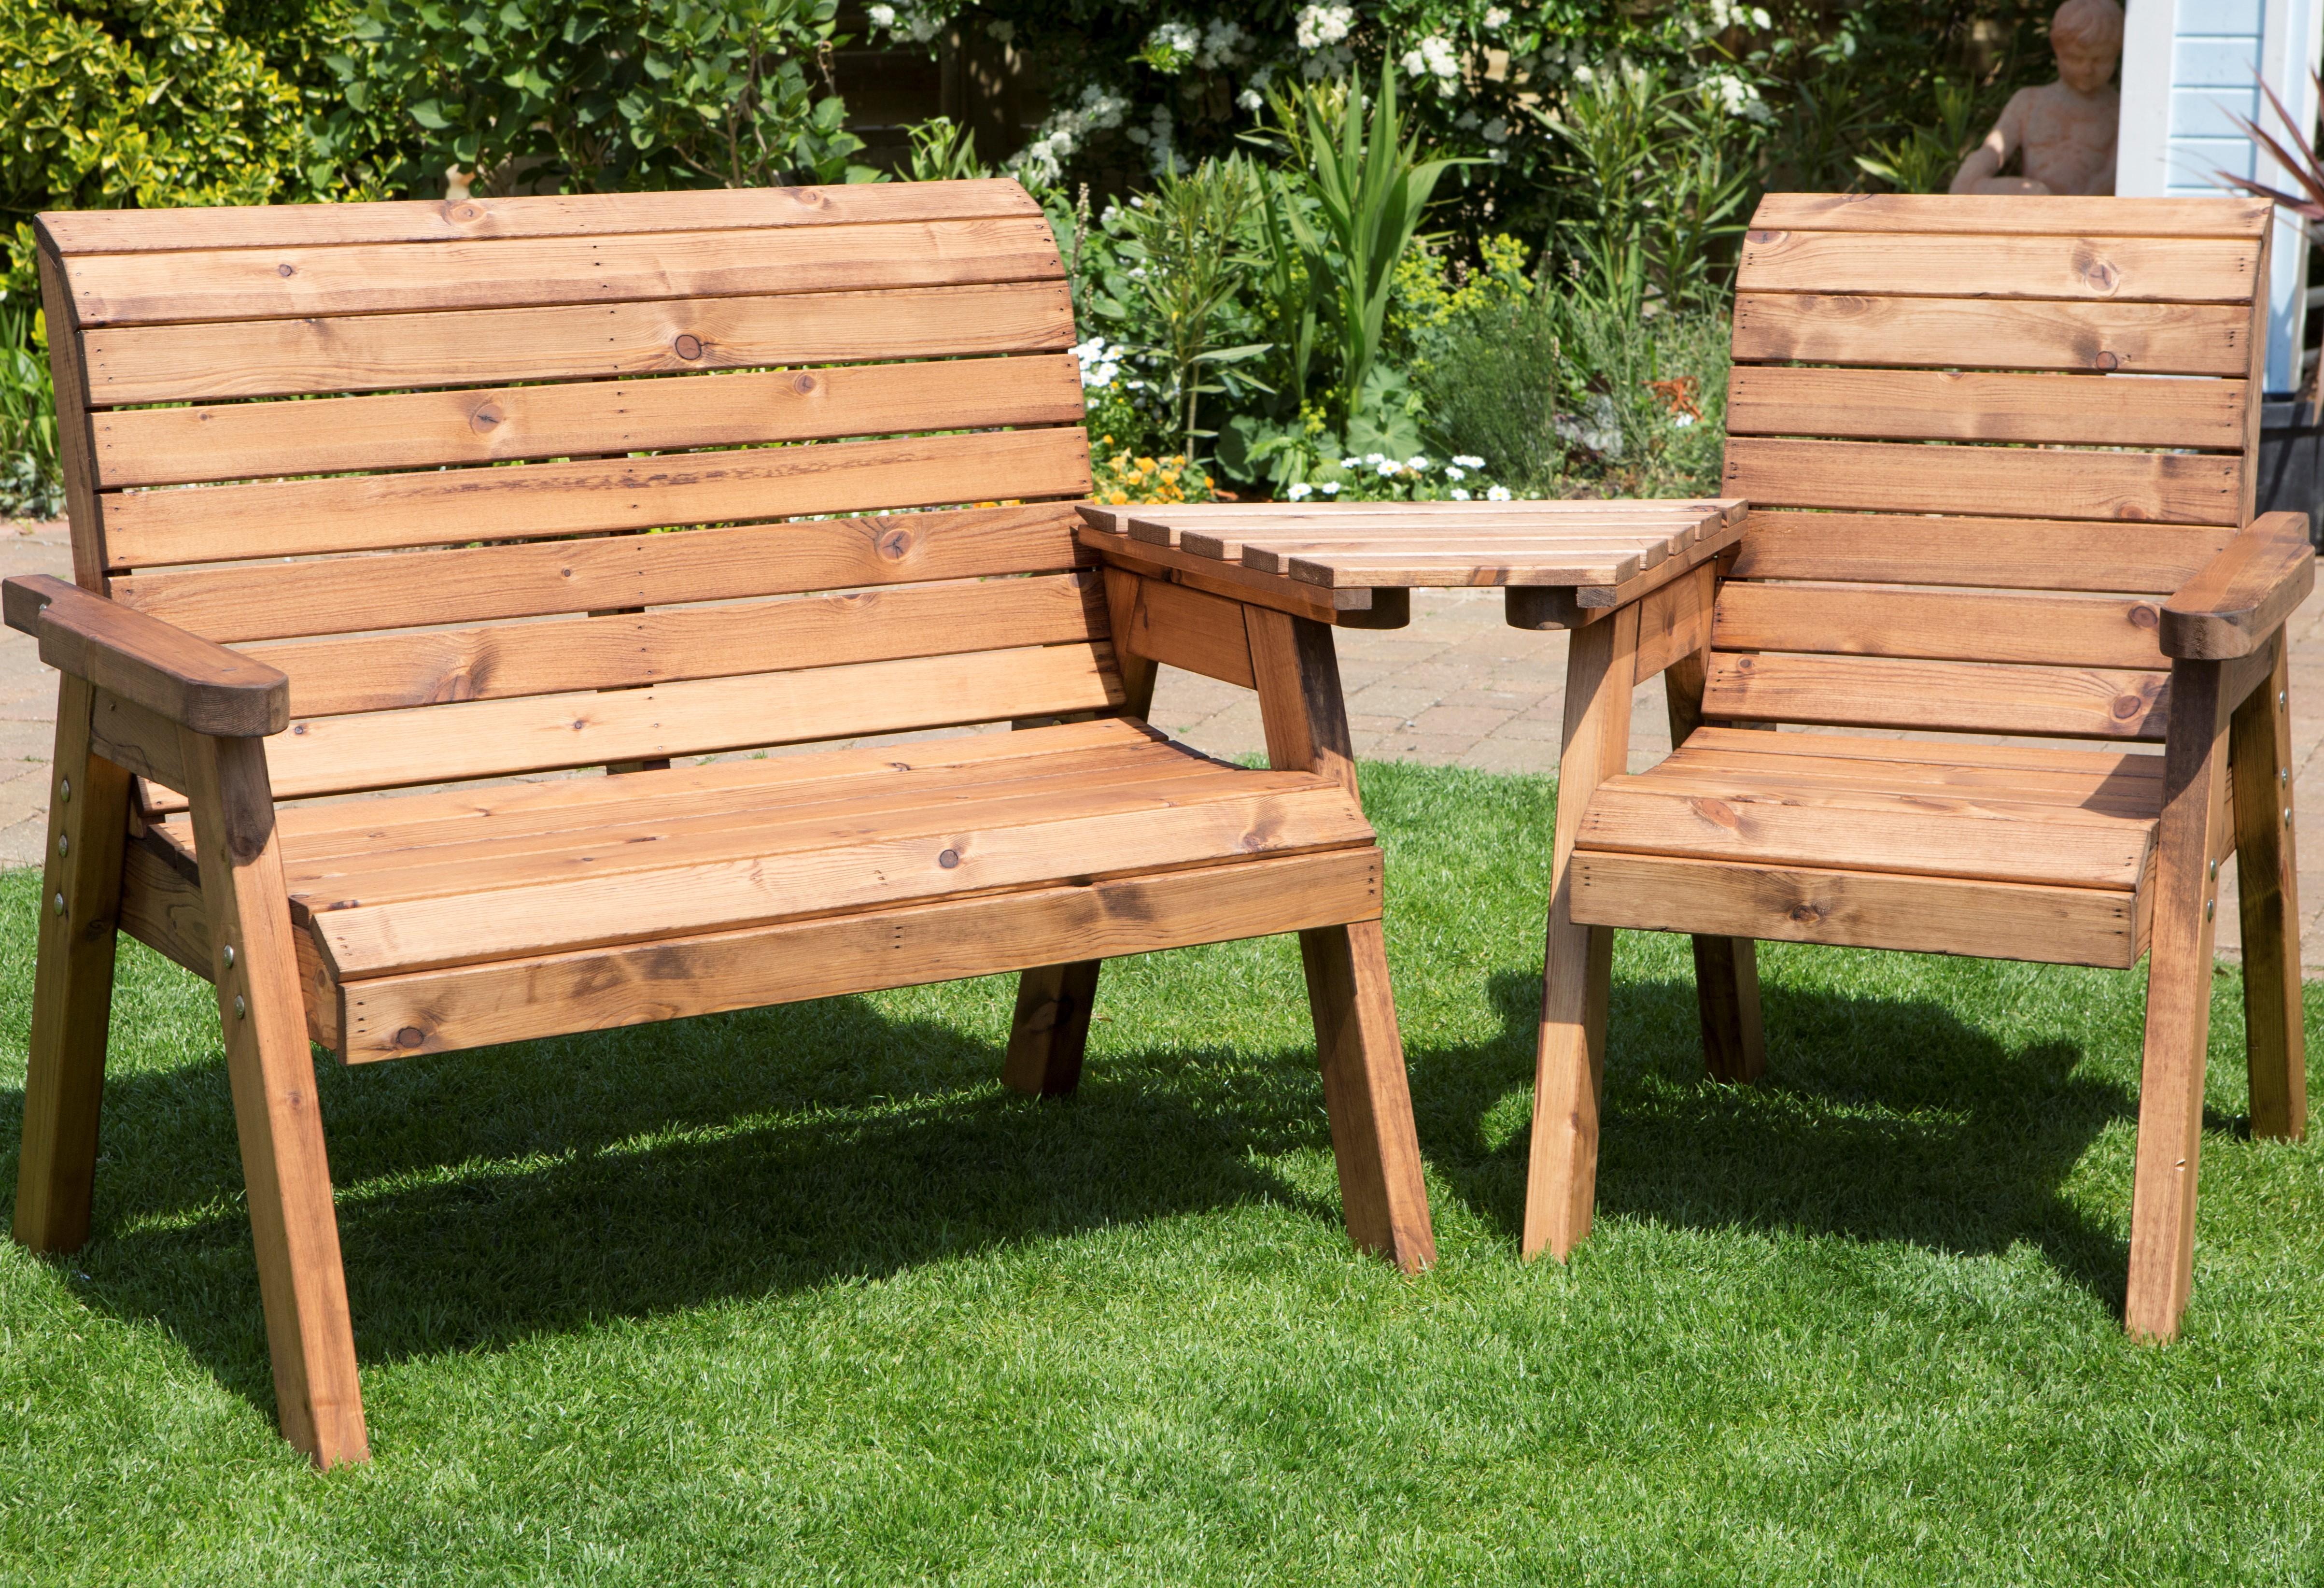 Details About Hand Made 3 Seater Chunky Rustic Wooden Garden Furniture Companion Set With Tray